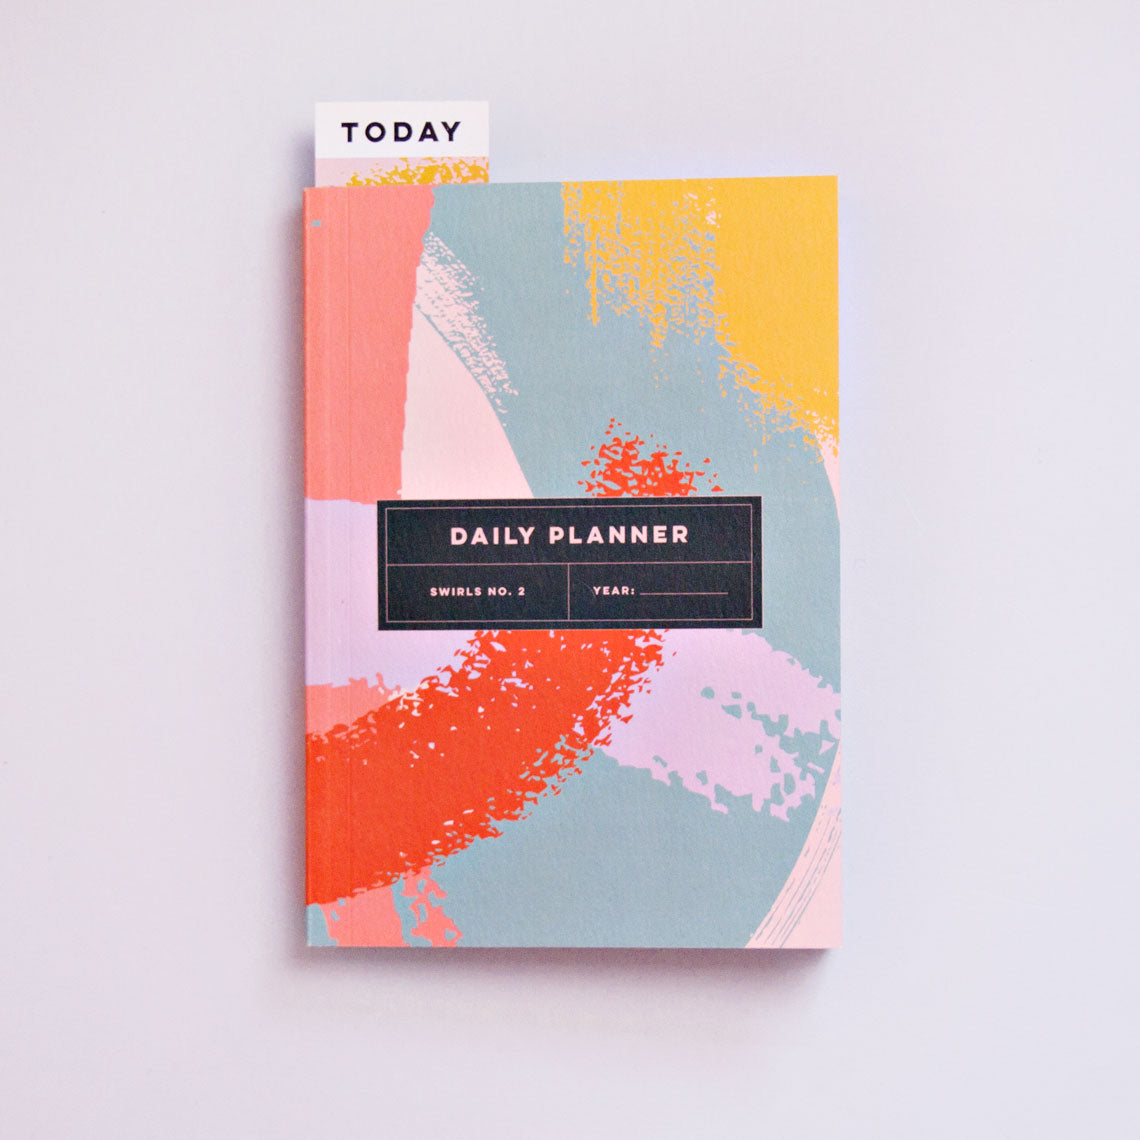 Swirls No.2 Daily Planner Book